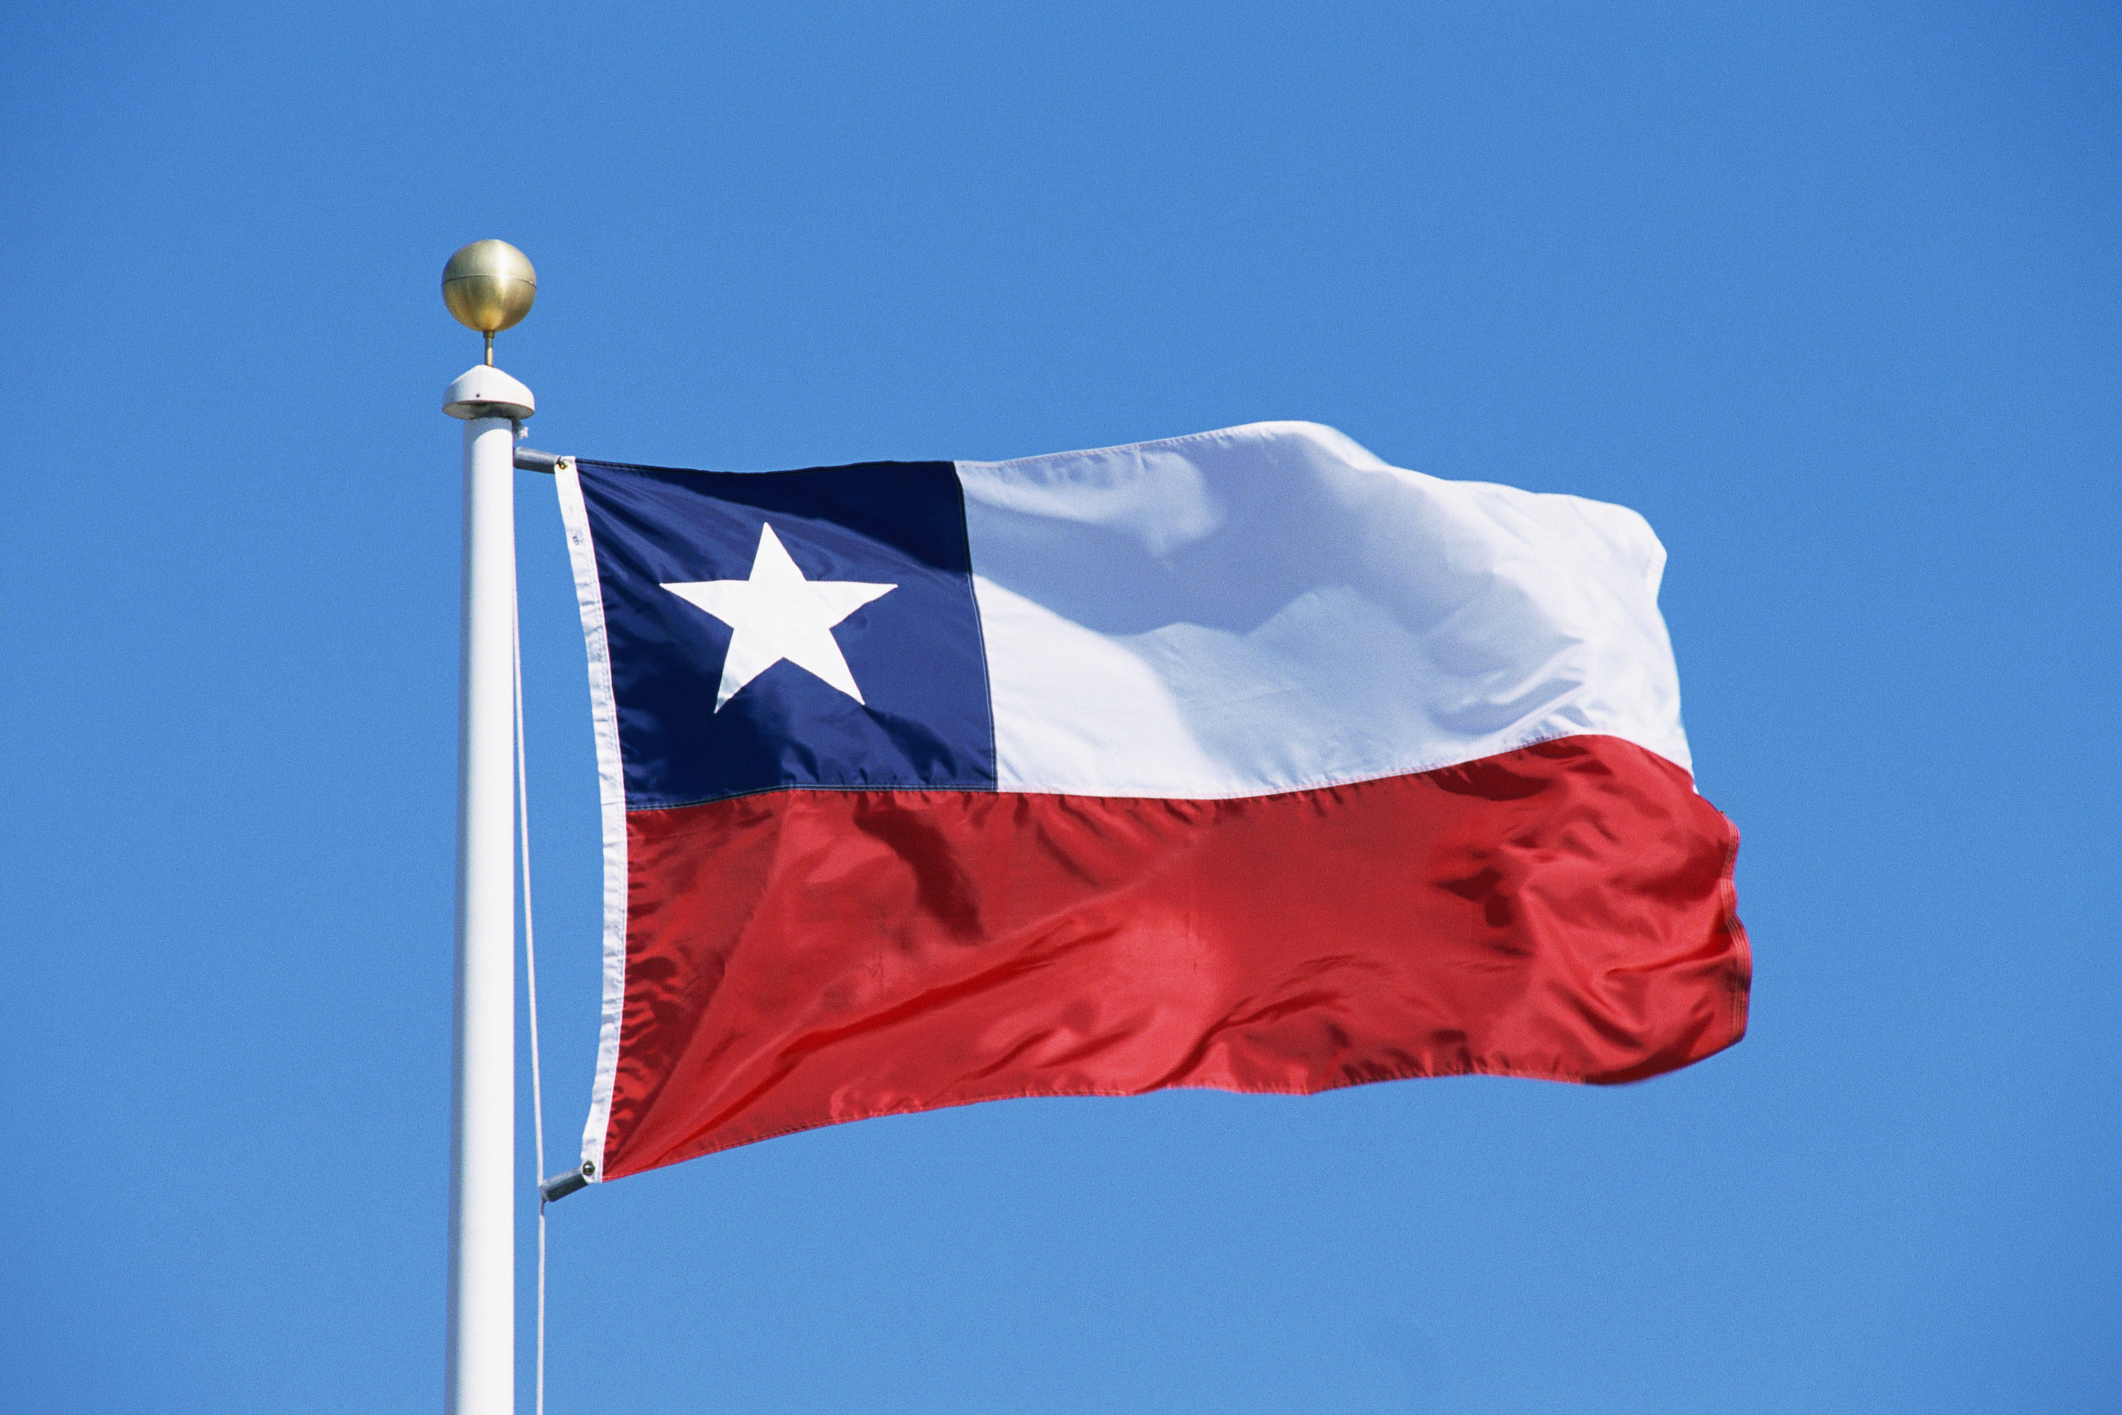 Image of the Chile national flag.